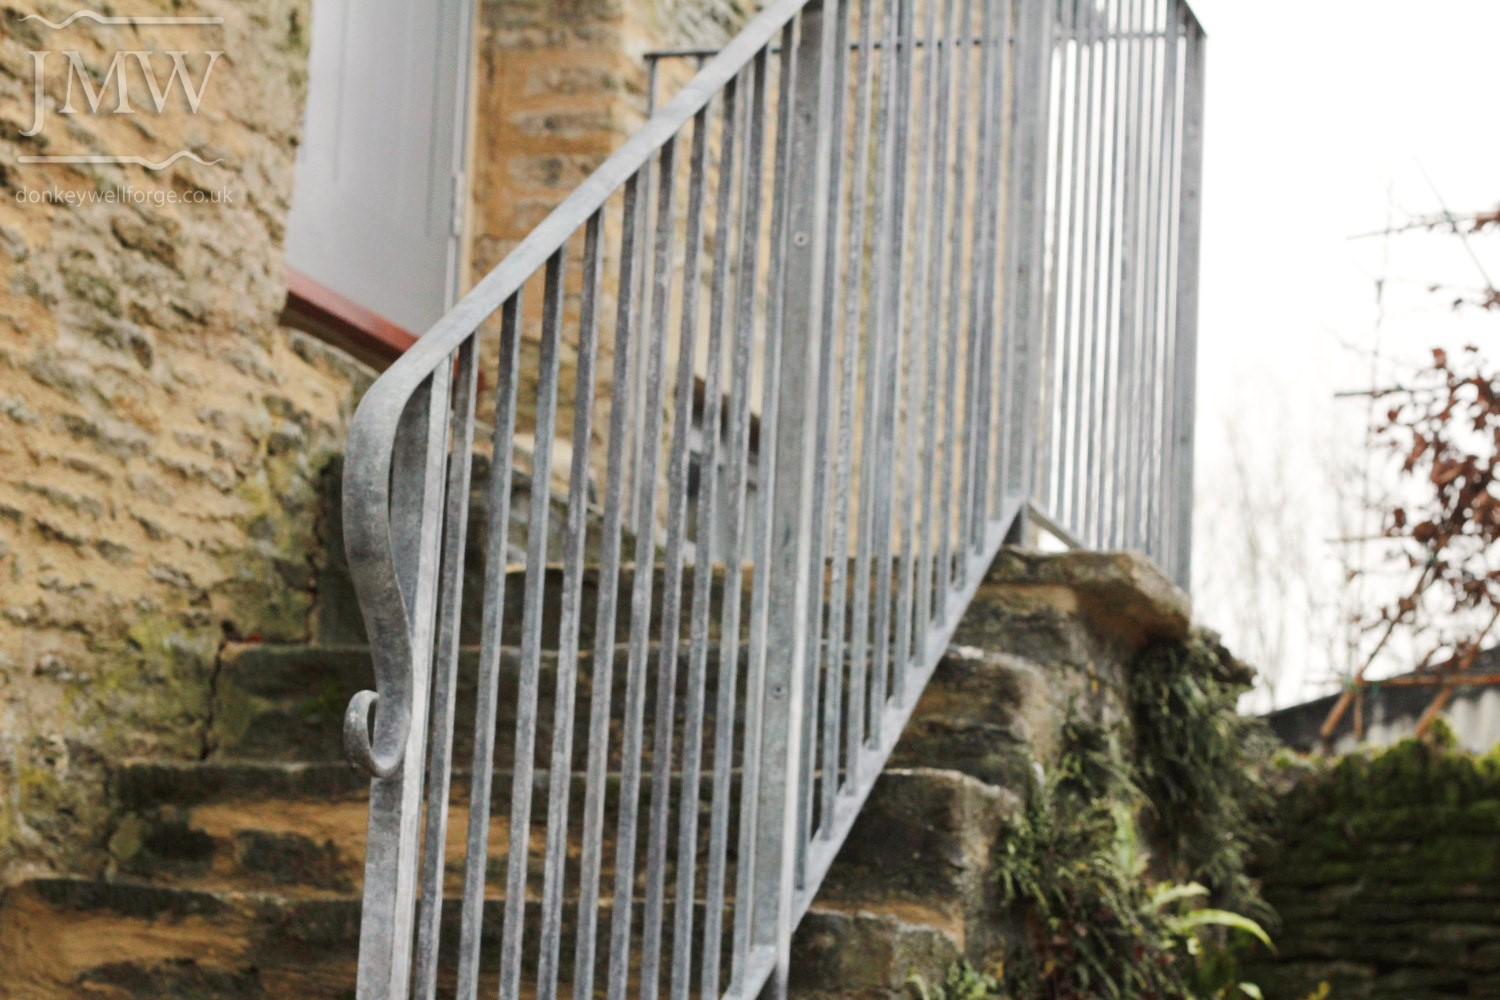 forged-ironwork-external-stair-handrail-railing-detail_